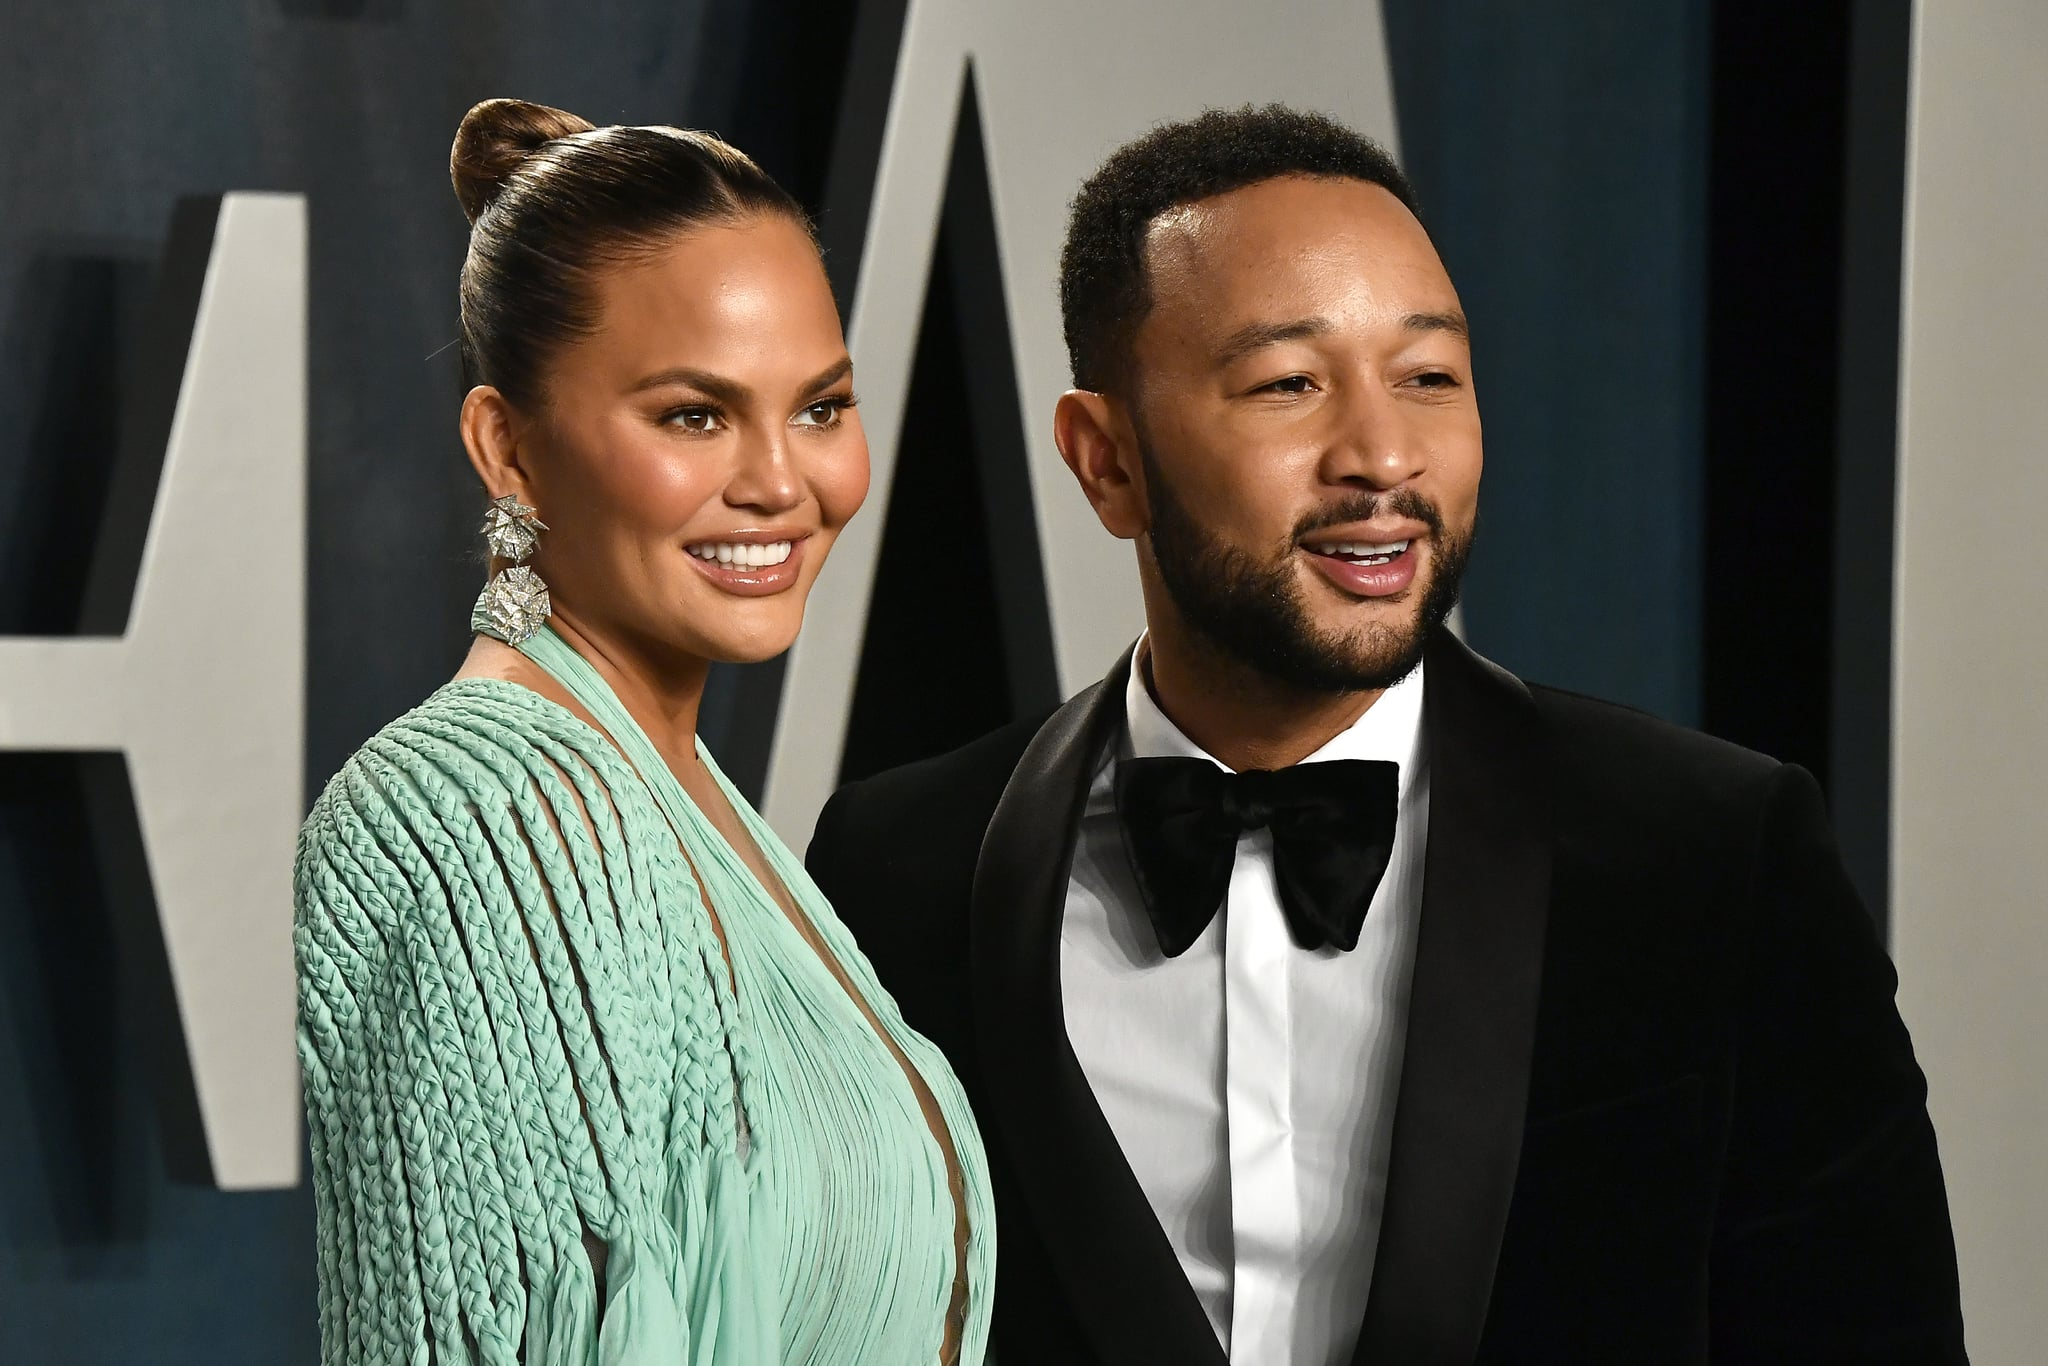 BEVERLY HILLS, CALIFORNIA - FEBRUARY 09: Chrissy Teigen and John Legend attend the 2020 Vanity Fair Oscar Party hosted by Radhika Jones at Wallis Annenberg Centre for the Performing Arts on February 09, 2020 in Beverly Hills, California. (Photo by Frazer Harrison/Getty Images)